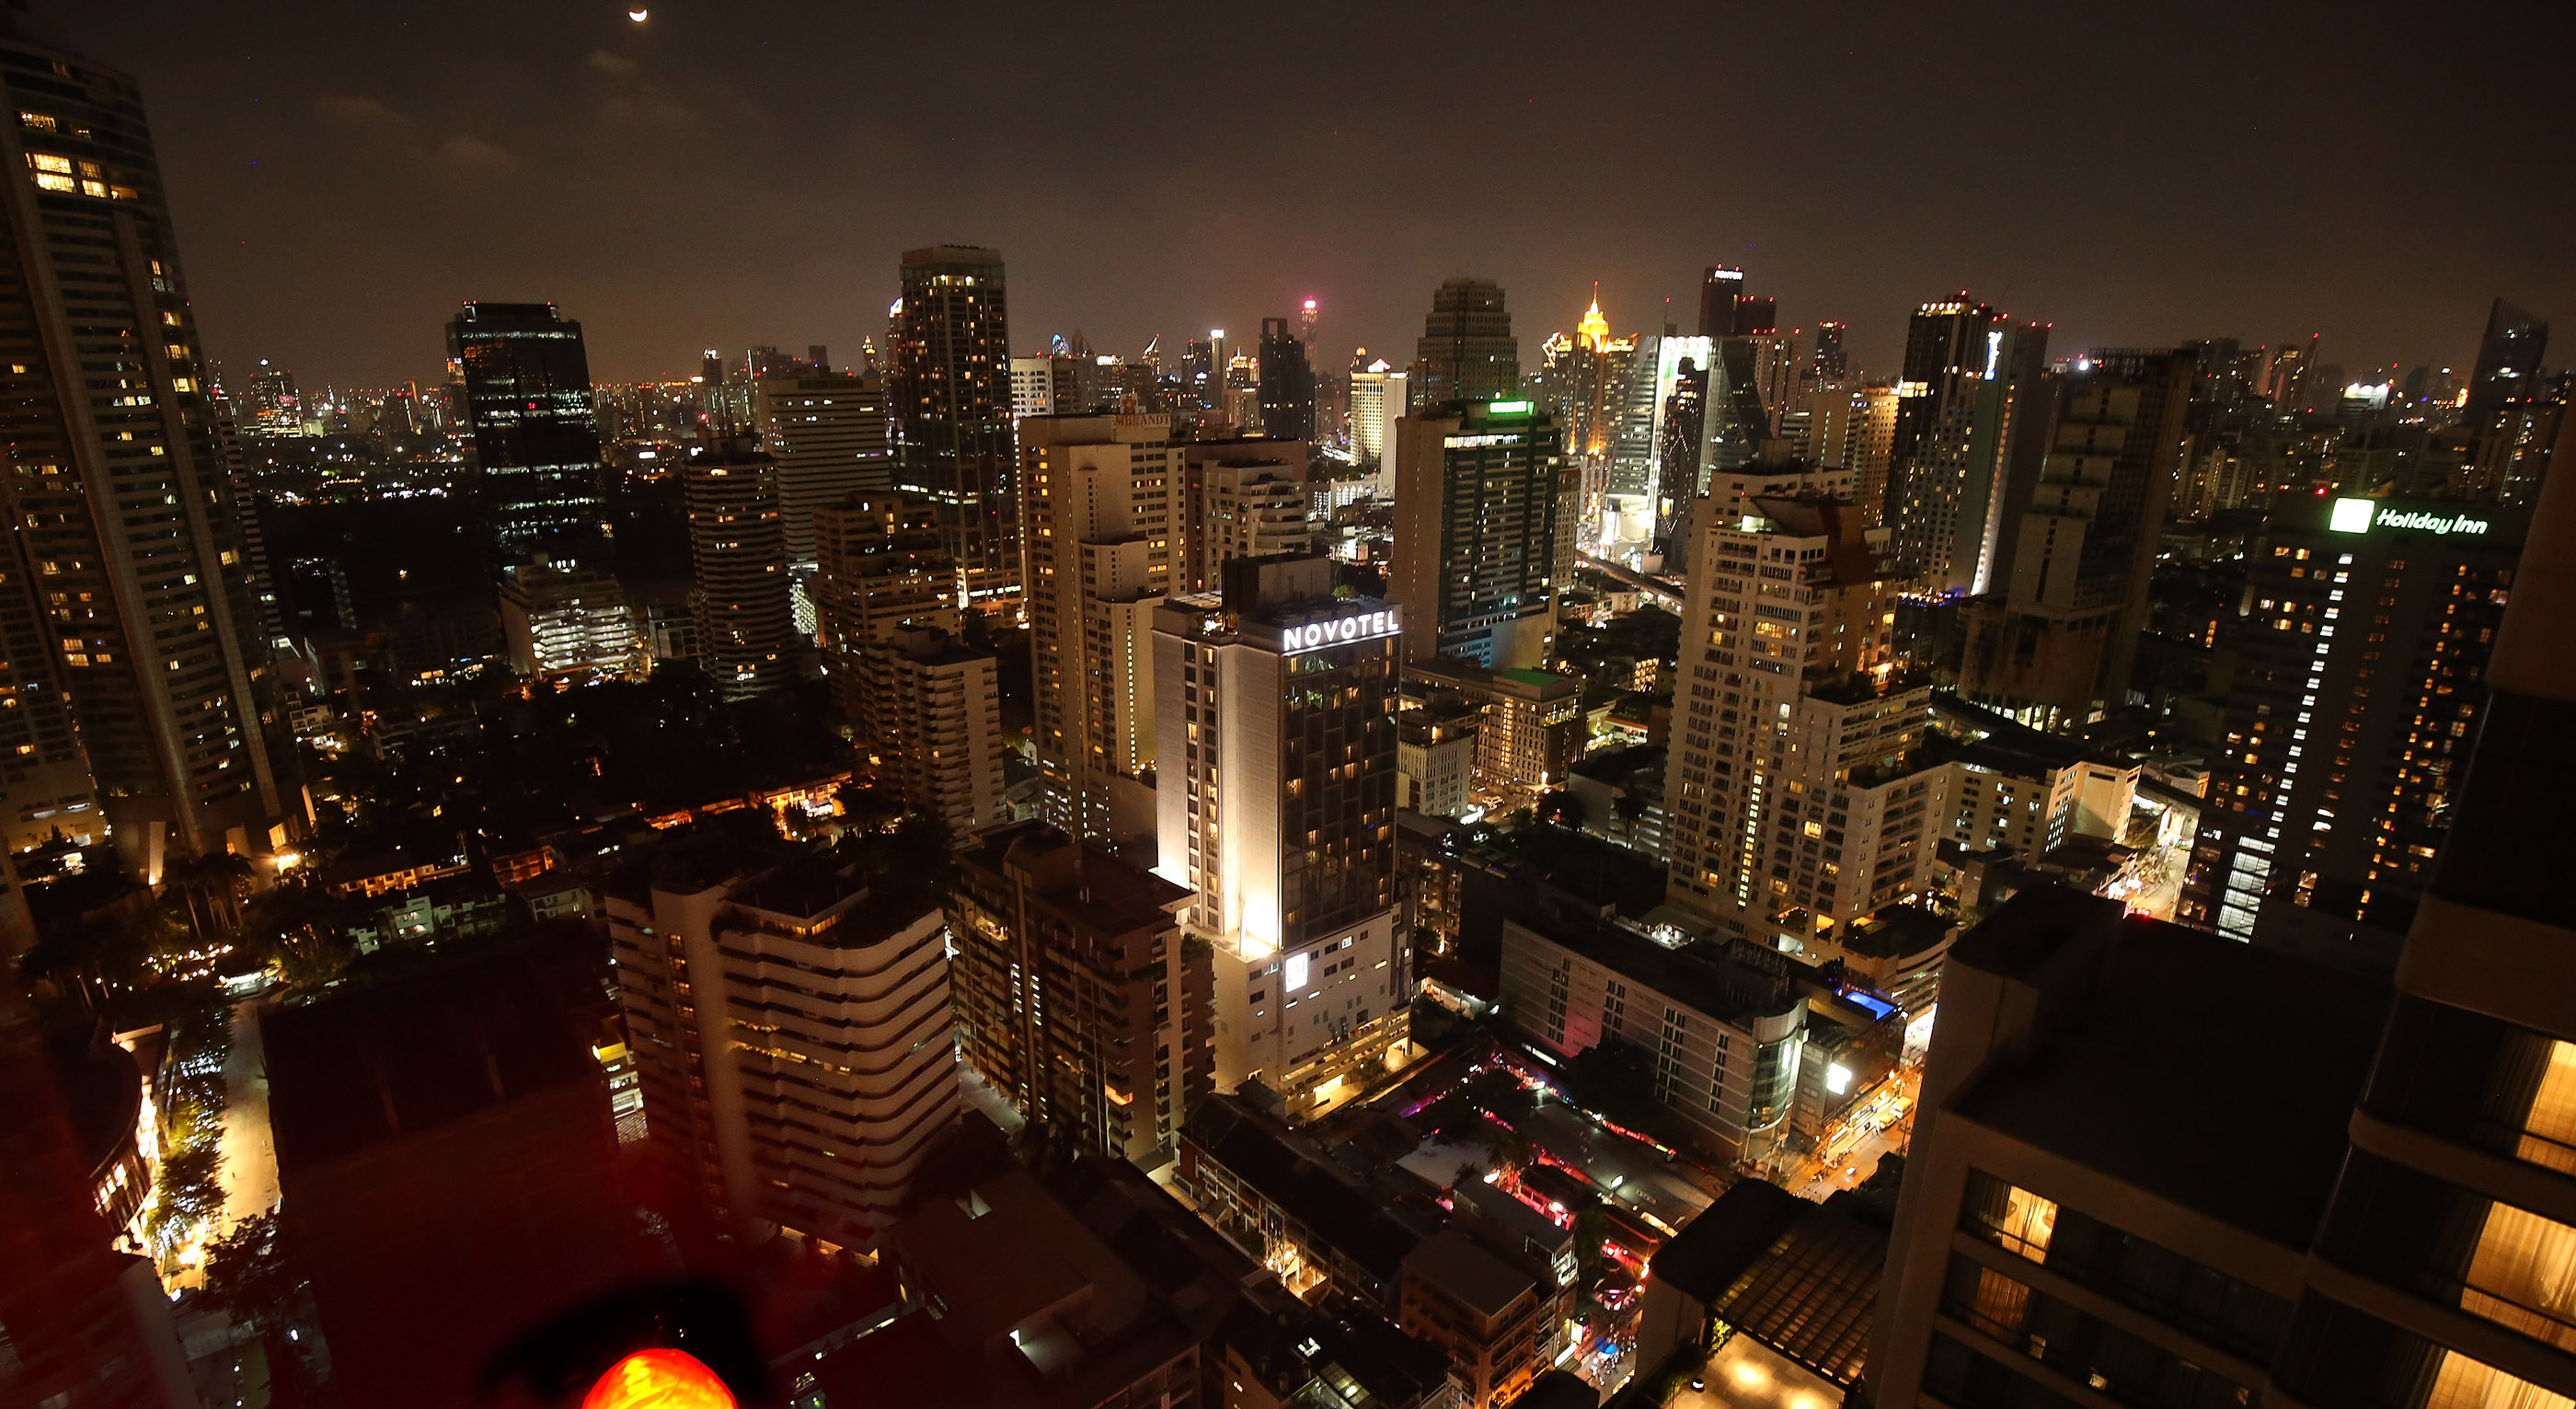 The night time skyline in Bangkok, Thailand, on Friday, April 20, 2018.